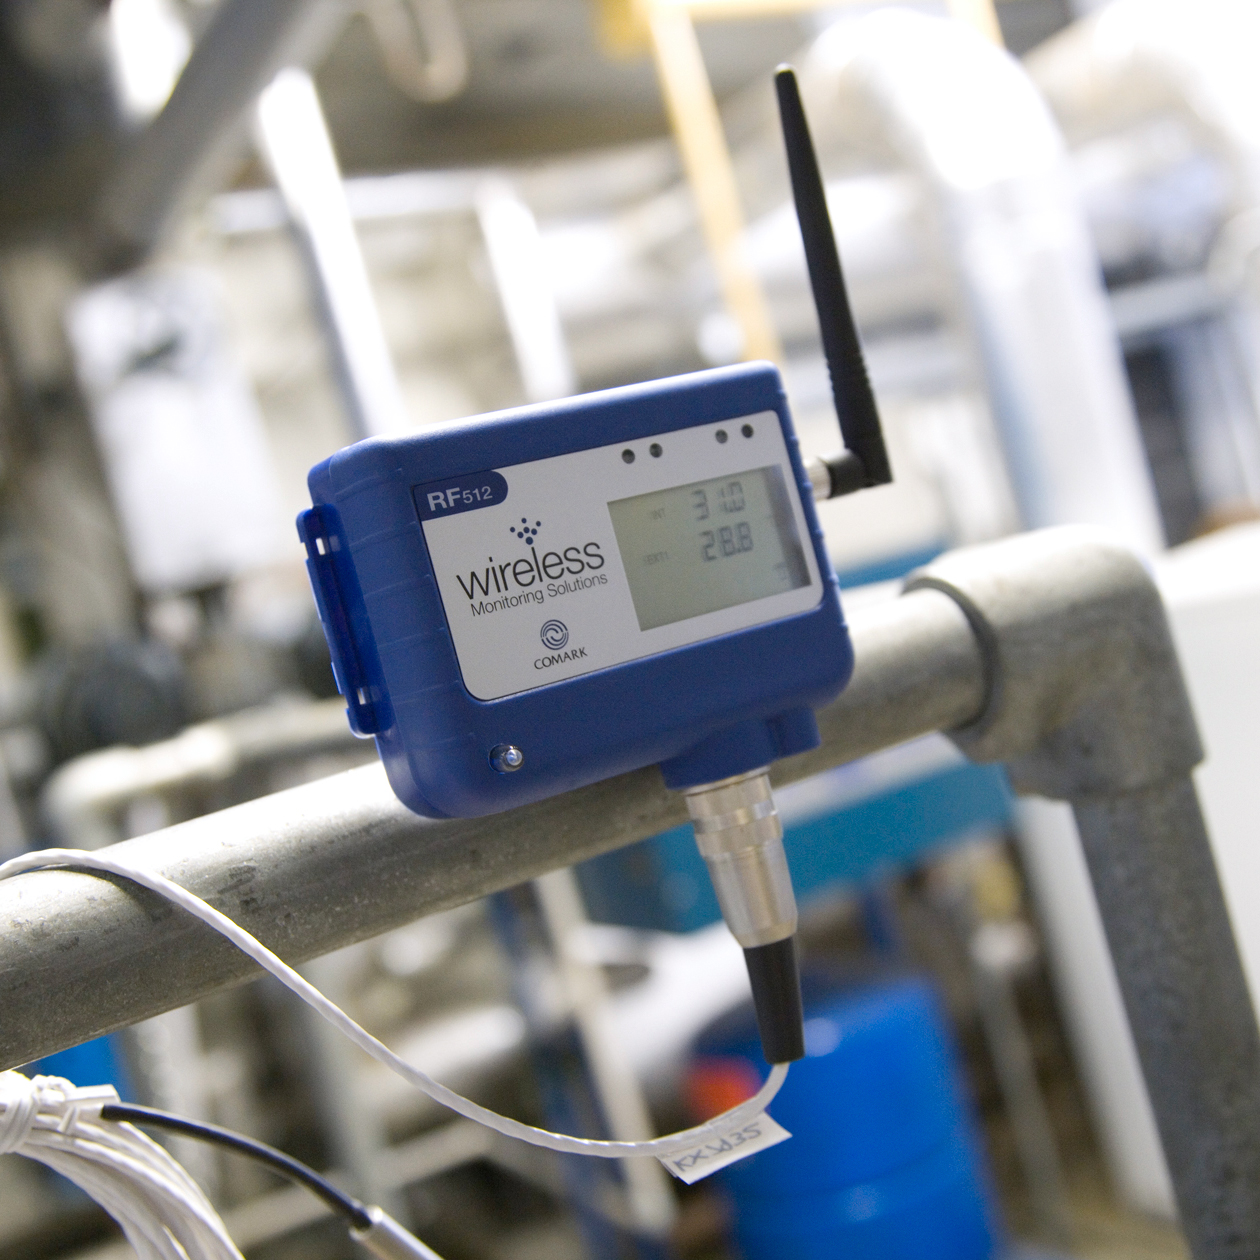 RF512 Wireless Temperature Transmitter from Comark Instruments